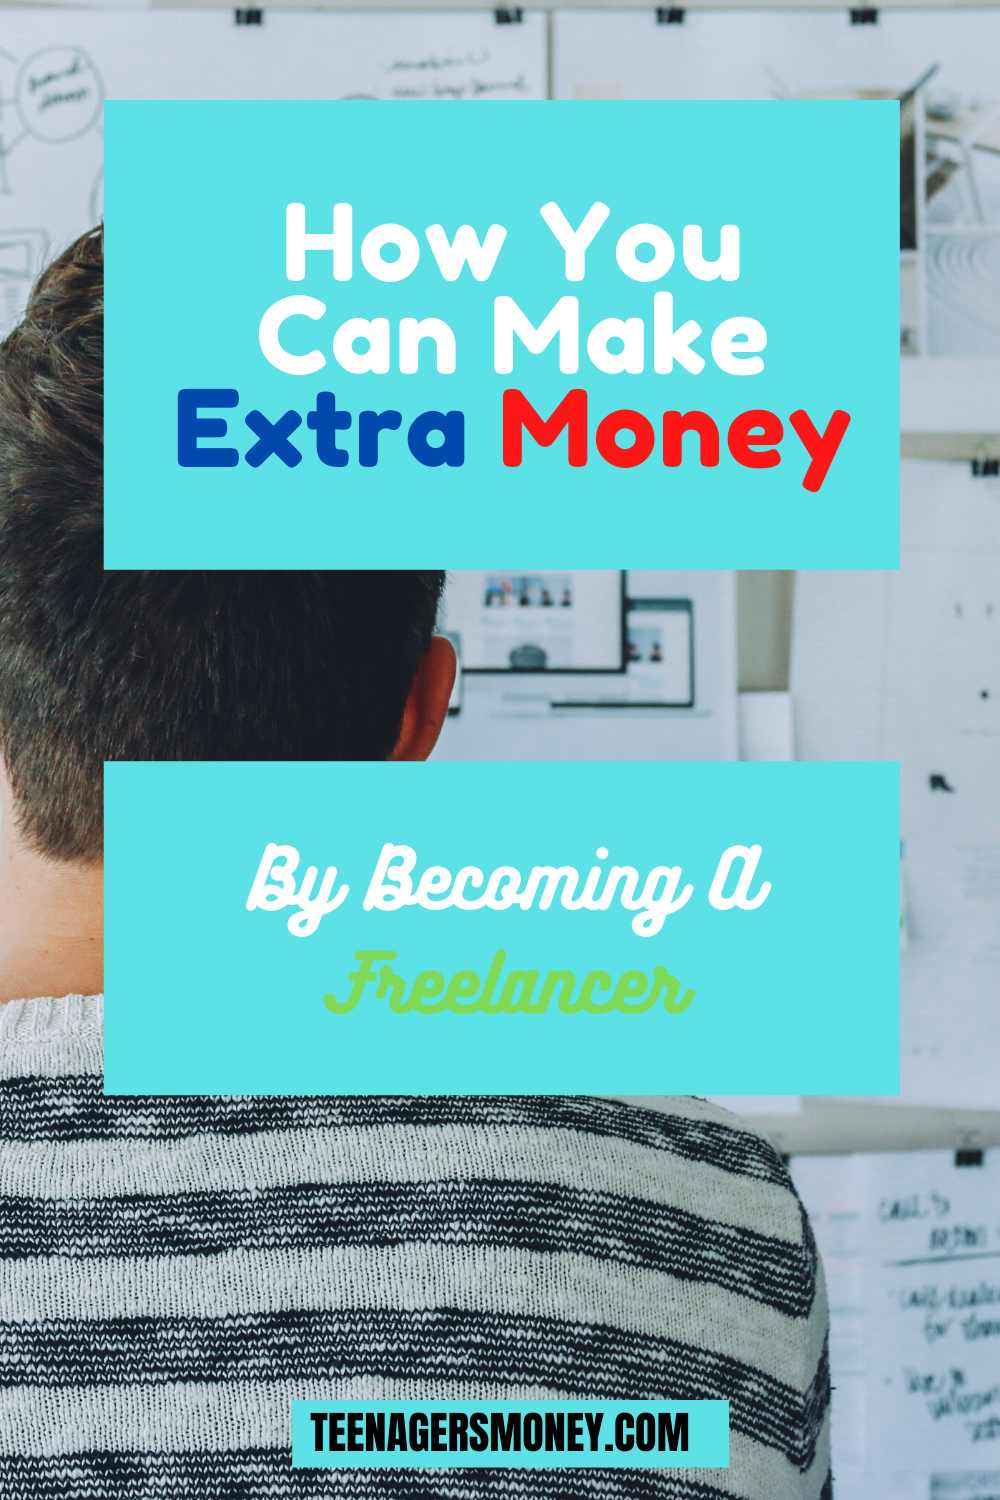 Sometimes, life gets out of hand and stuff comes up that usually costs more money than it should. But thanks to the Internet, now you have the perfect opportunity. In this article, I go on to explain how to make money online through freelancing.   #money #makemoney #selfemployed #entreprenuer #howtomakemoneyonline #makemoneyonline #onlinemoneymakingideas